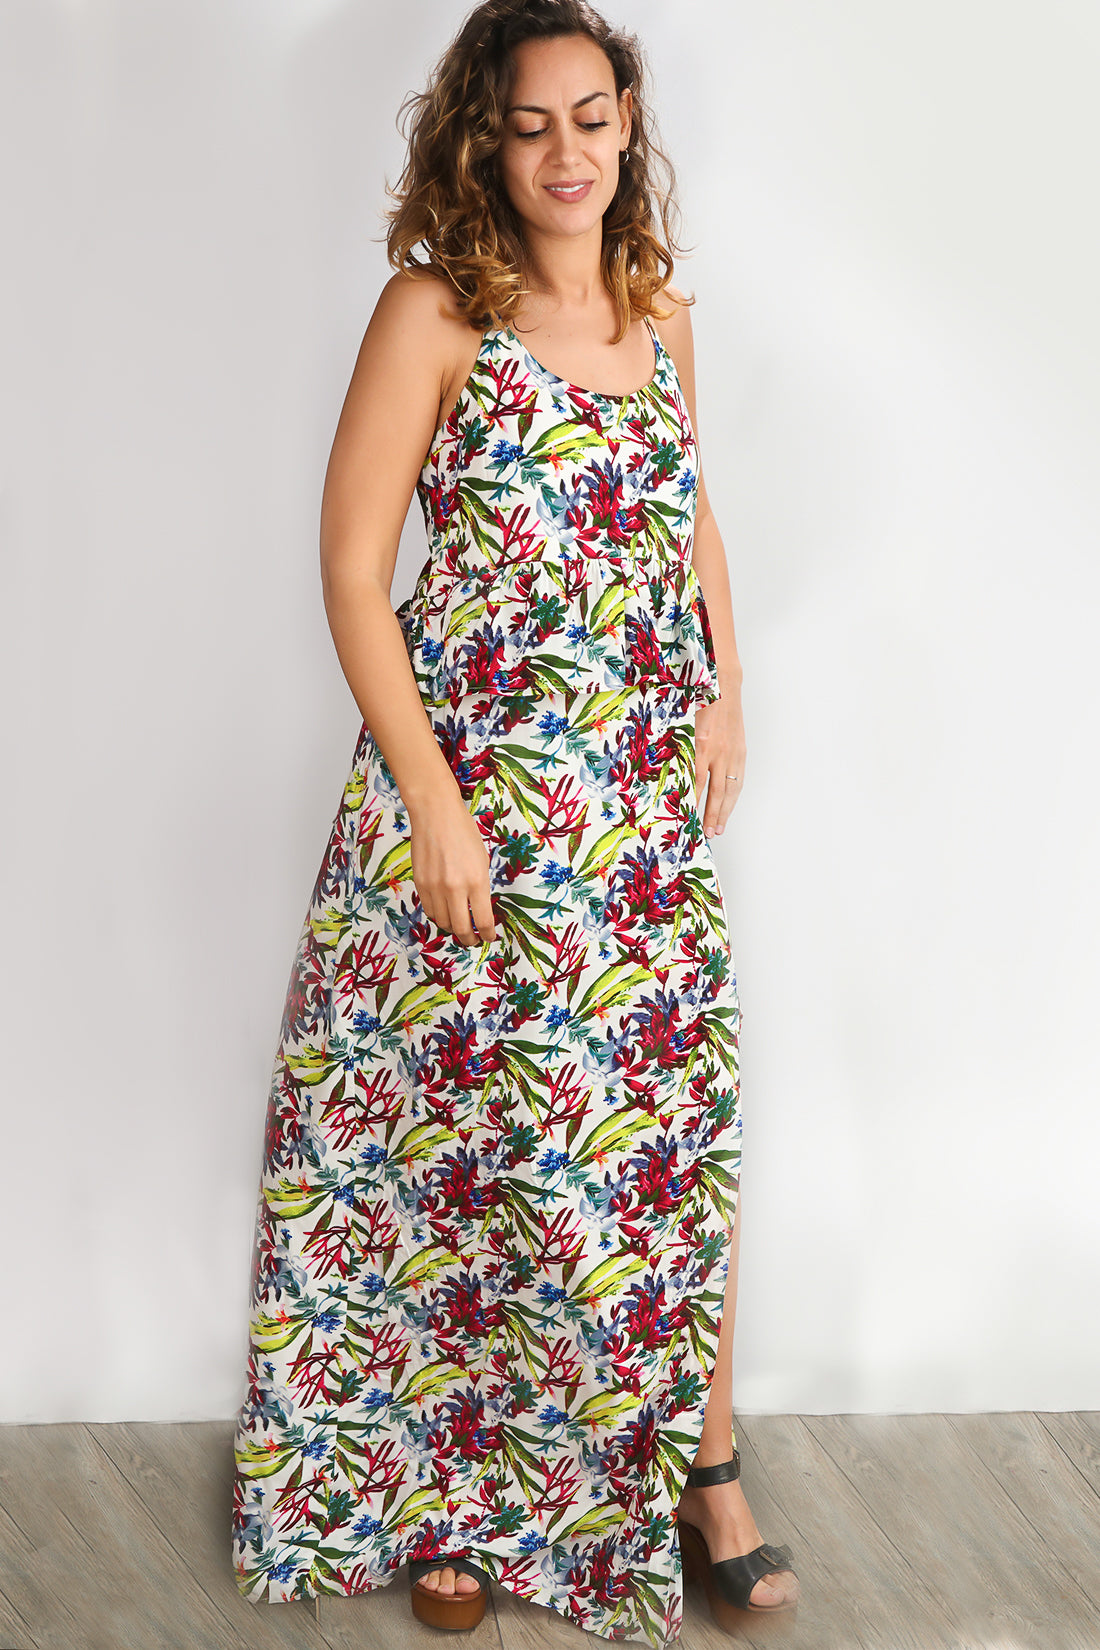 Ivory Vibrant Floral Print Lined Maxi Dress